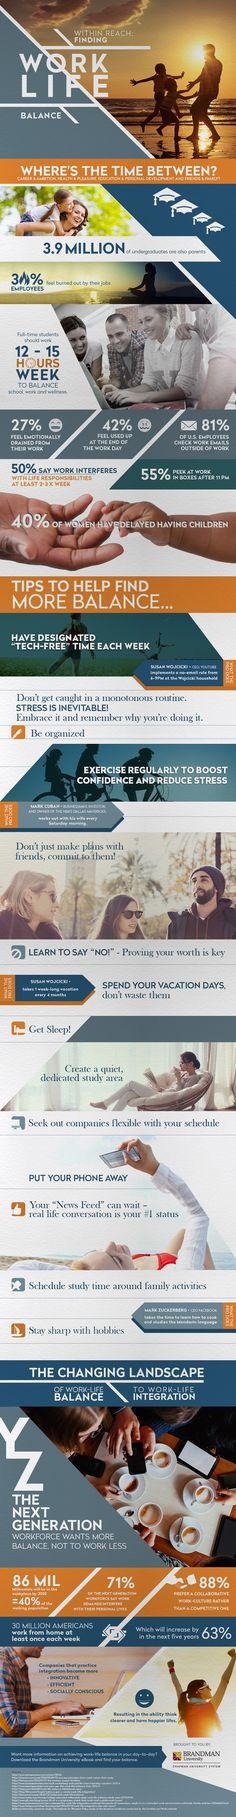 Finding Work-Life Balance Infographic - http://elearninginfographics.com/finding-work-life-balance-infographic/